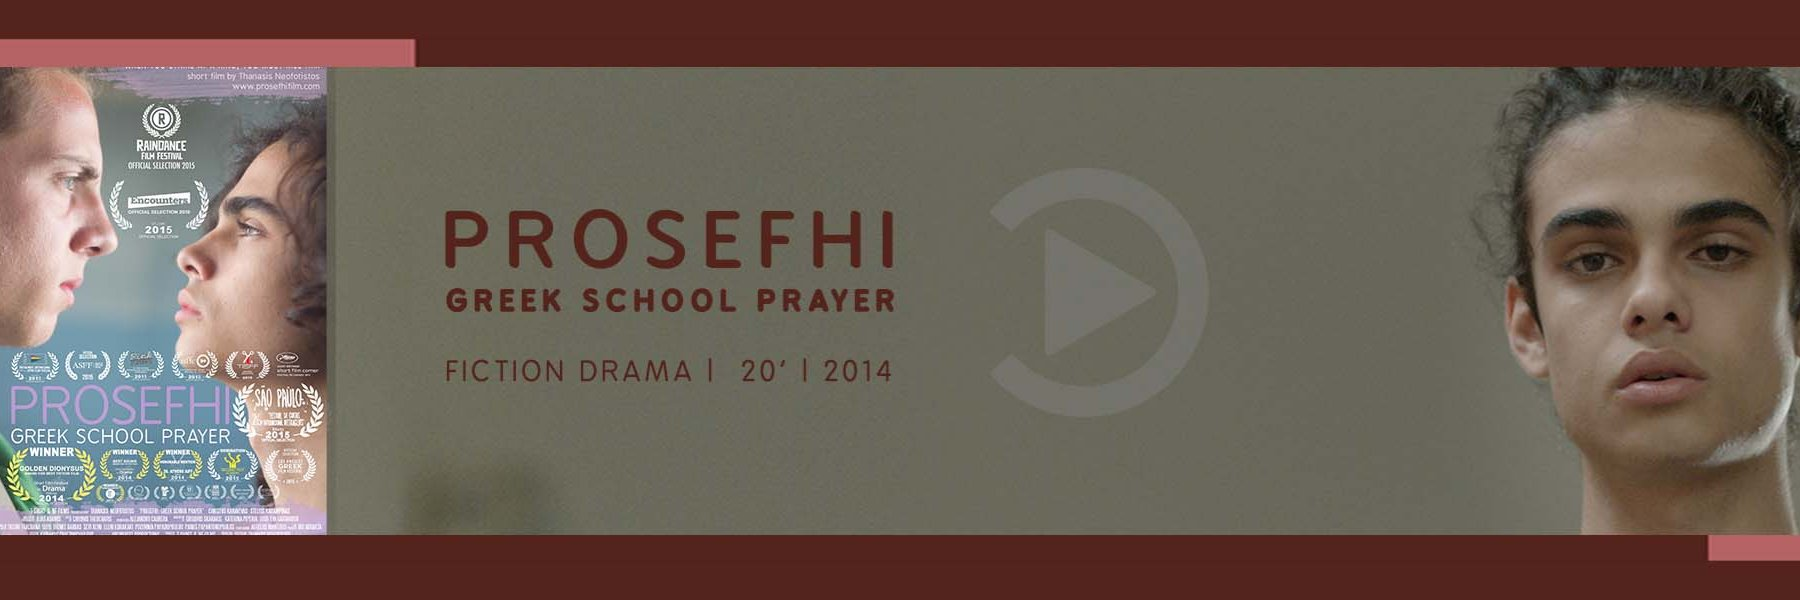 PROSEFHI | Short Film by Thanasis Neofotistos